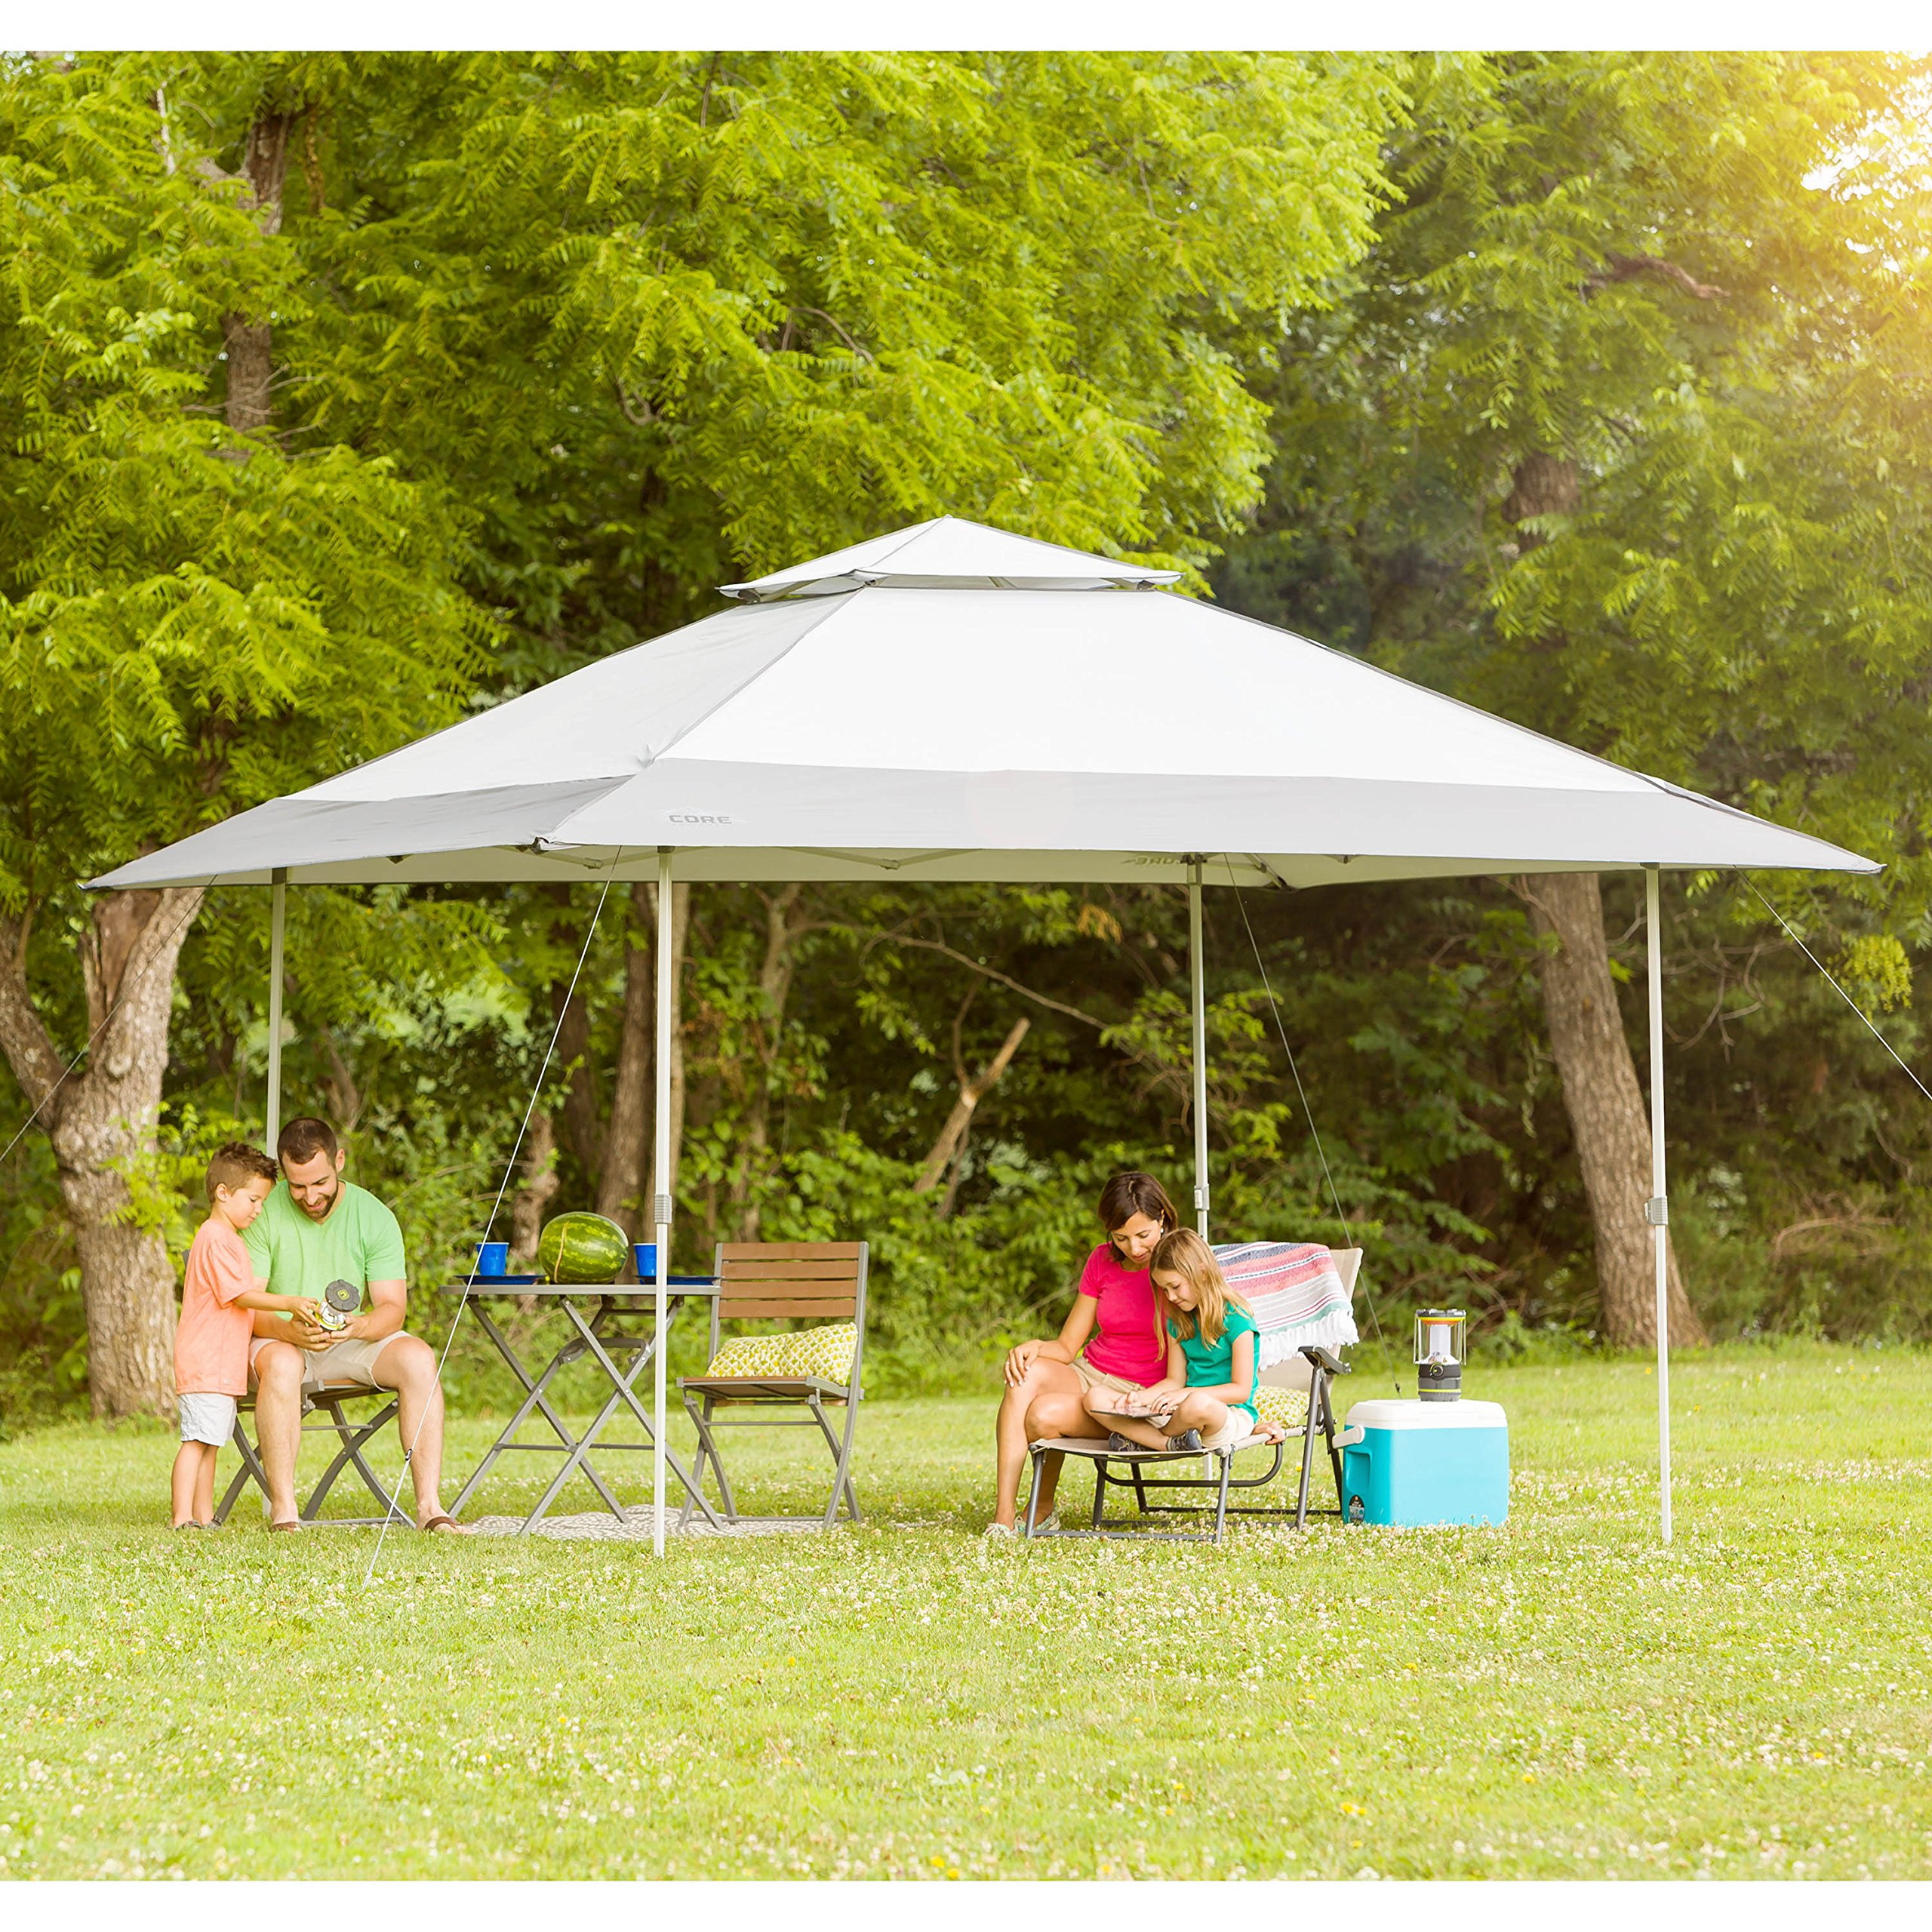 CORE 13' x 13' Instant Shelter Pop Up Canopy Gazebo Tent for Shade in Backyard, Party, Event with Wheeled Carry Bag, Gray by CORE (Image #2)